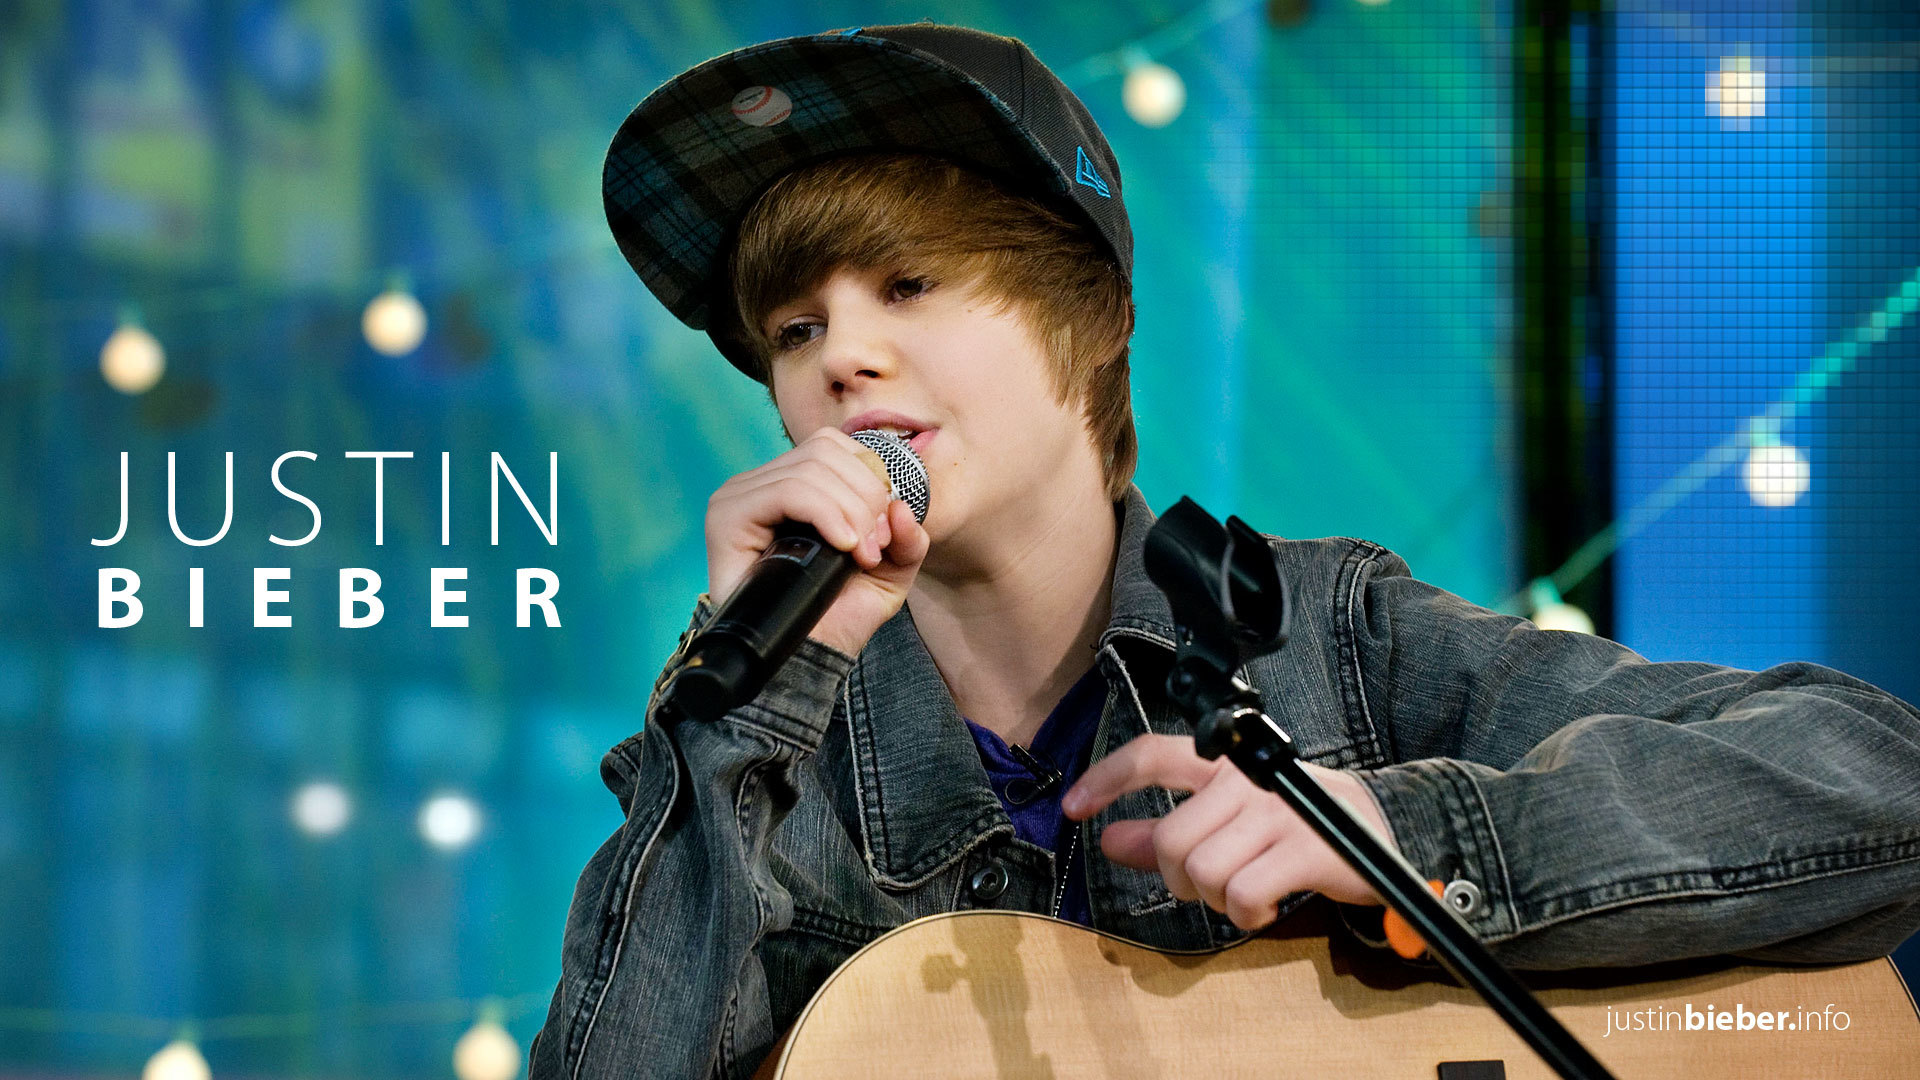 justin Bieber Celebrity HD Wallpaper